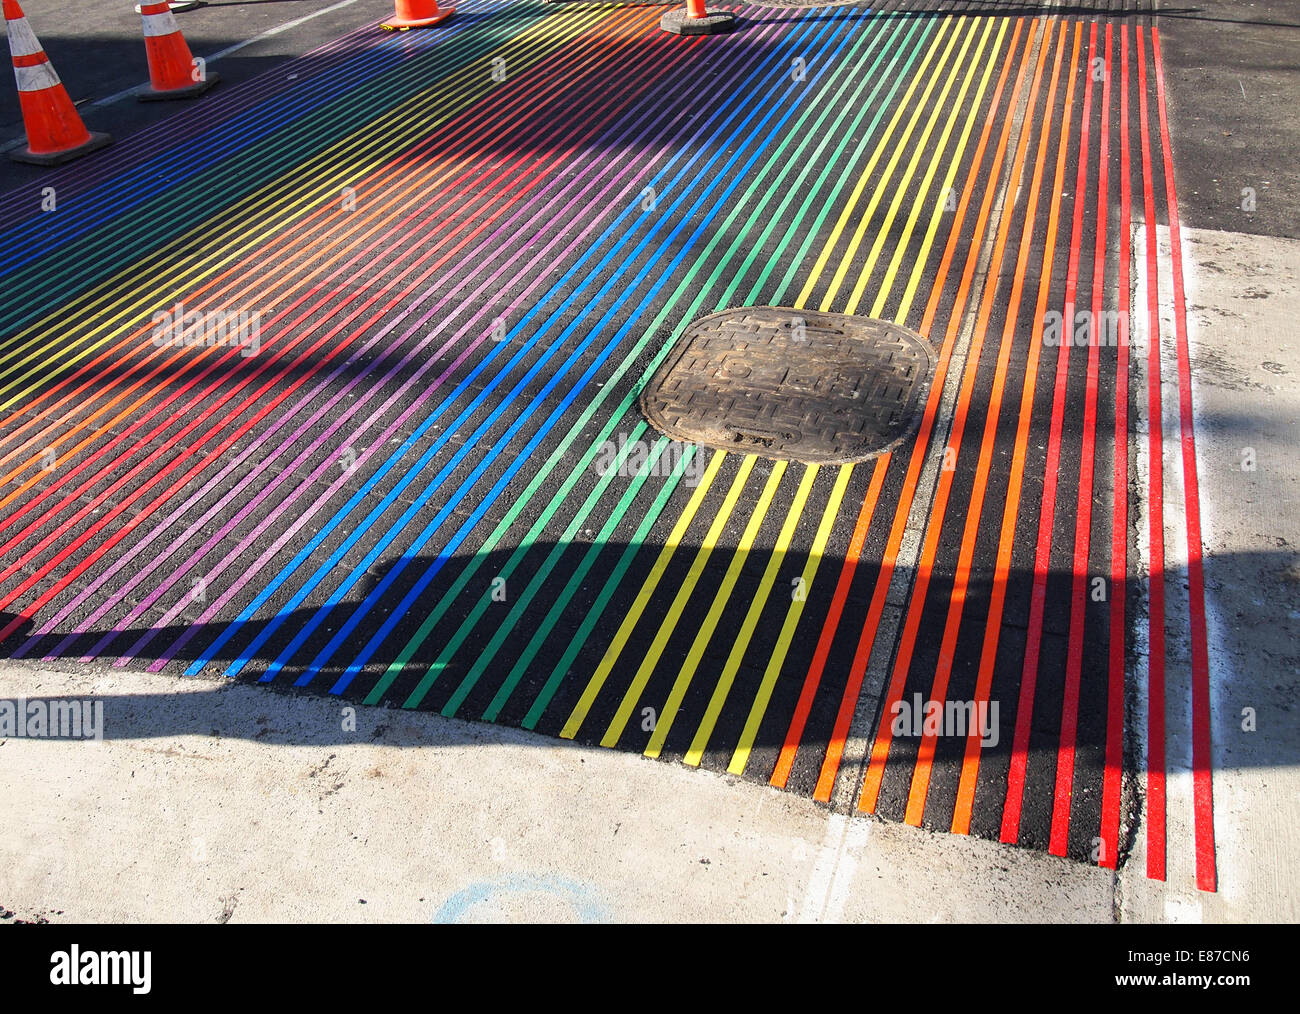 installation of new Rainbow pedestrian crosswalk, Castro Street - Stock Image